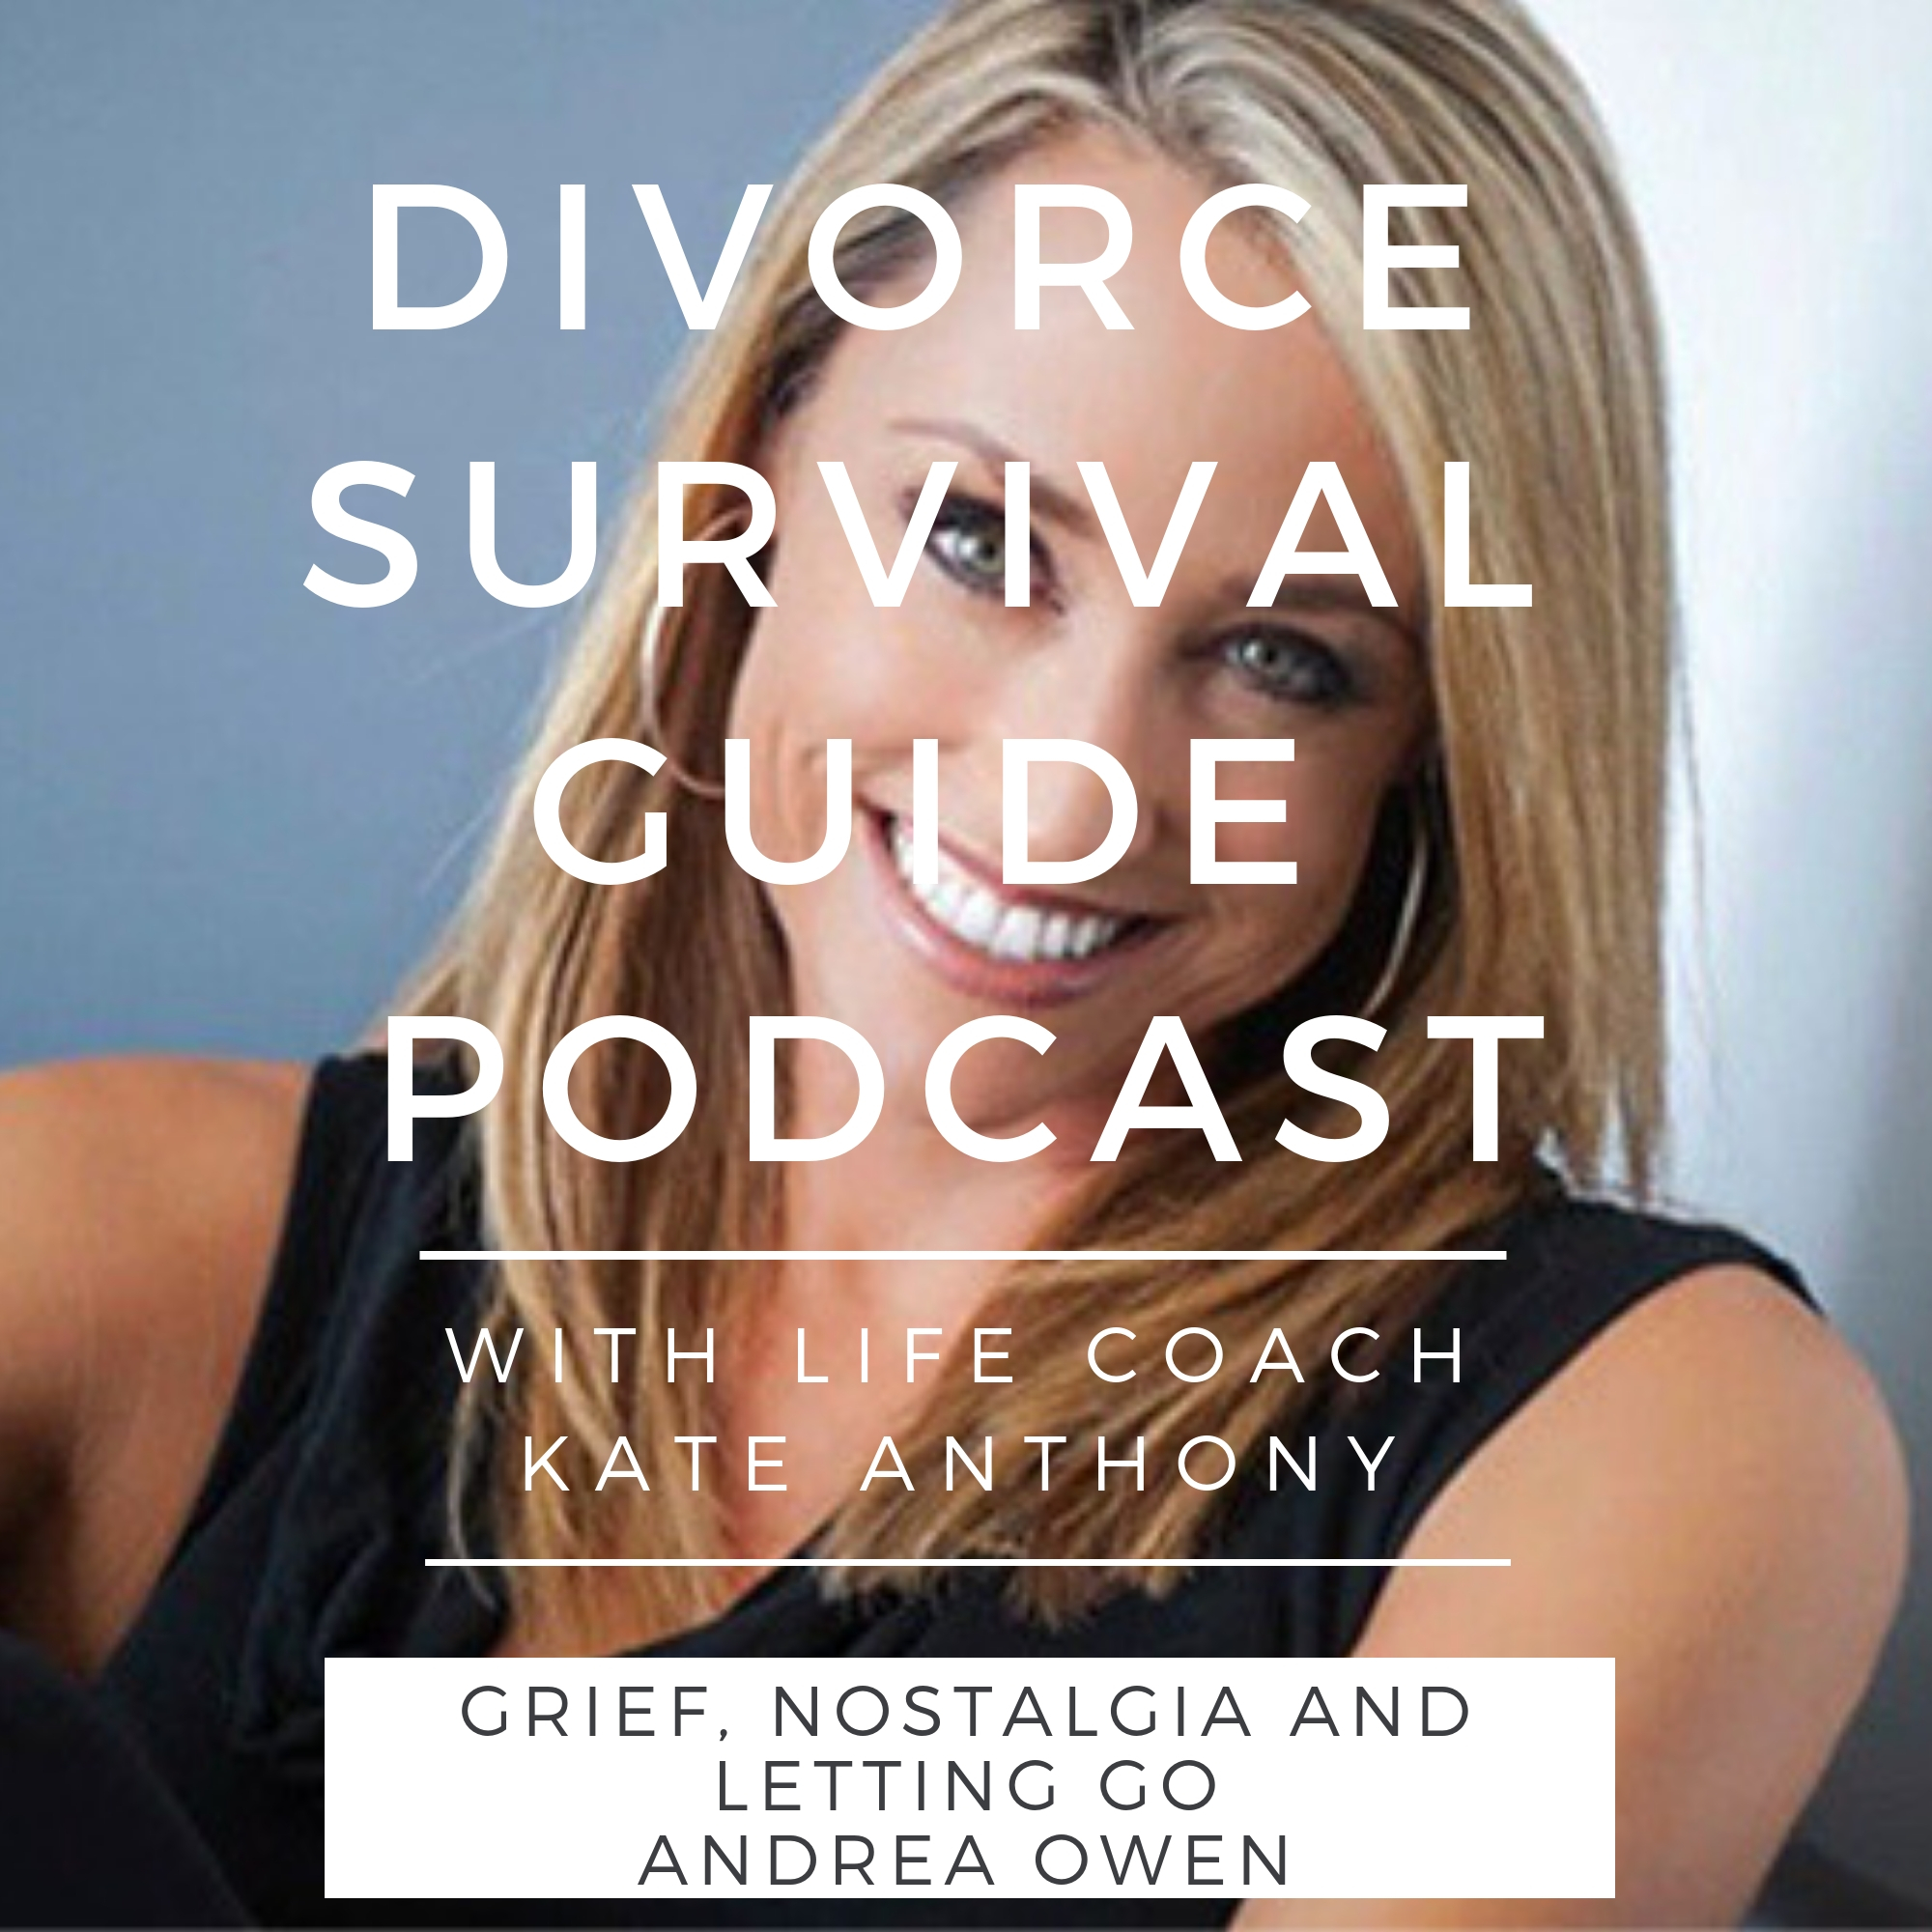 The Divorce Survival Guide Podcast - Grief, Nostalgia and Letting Go with Andrea Owen